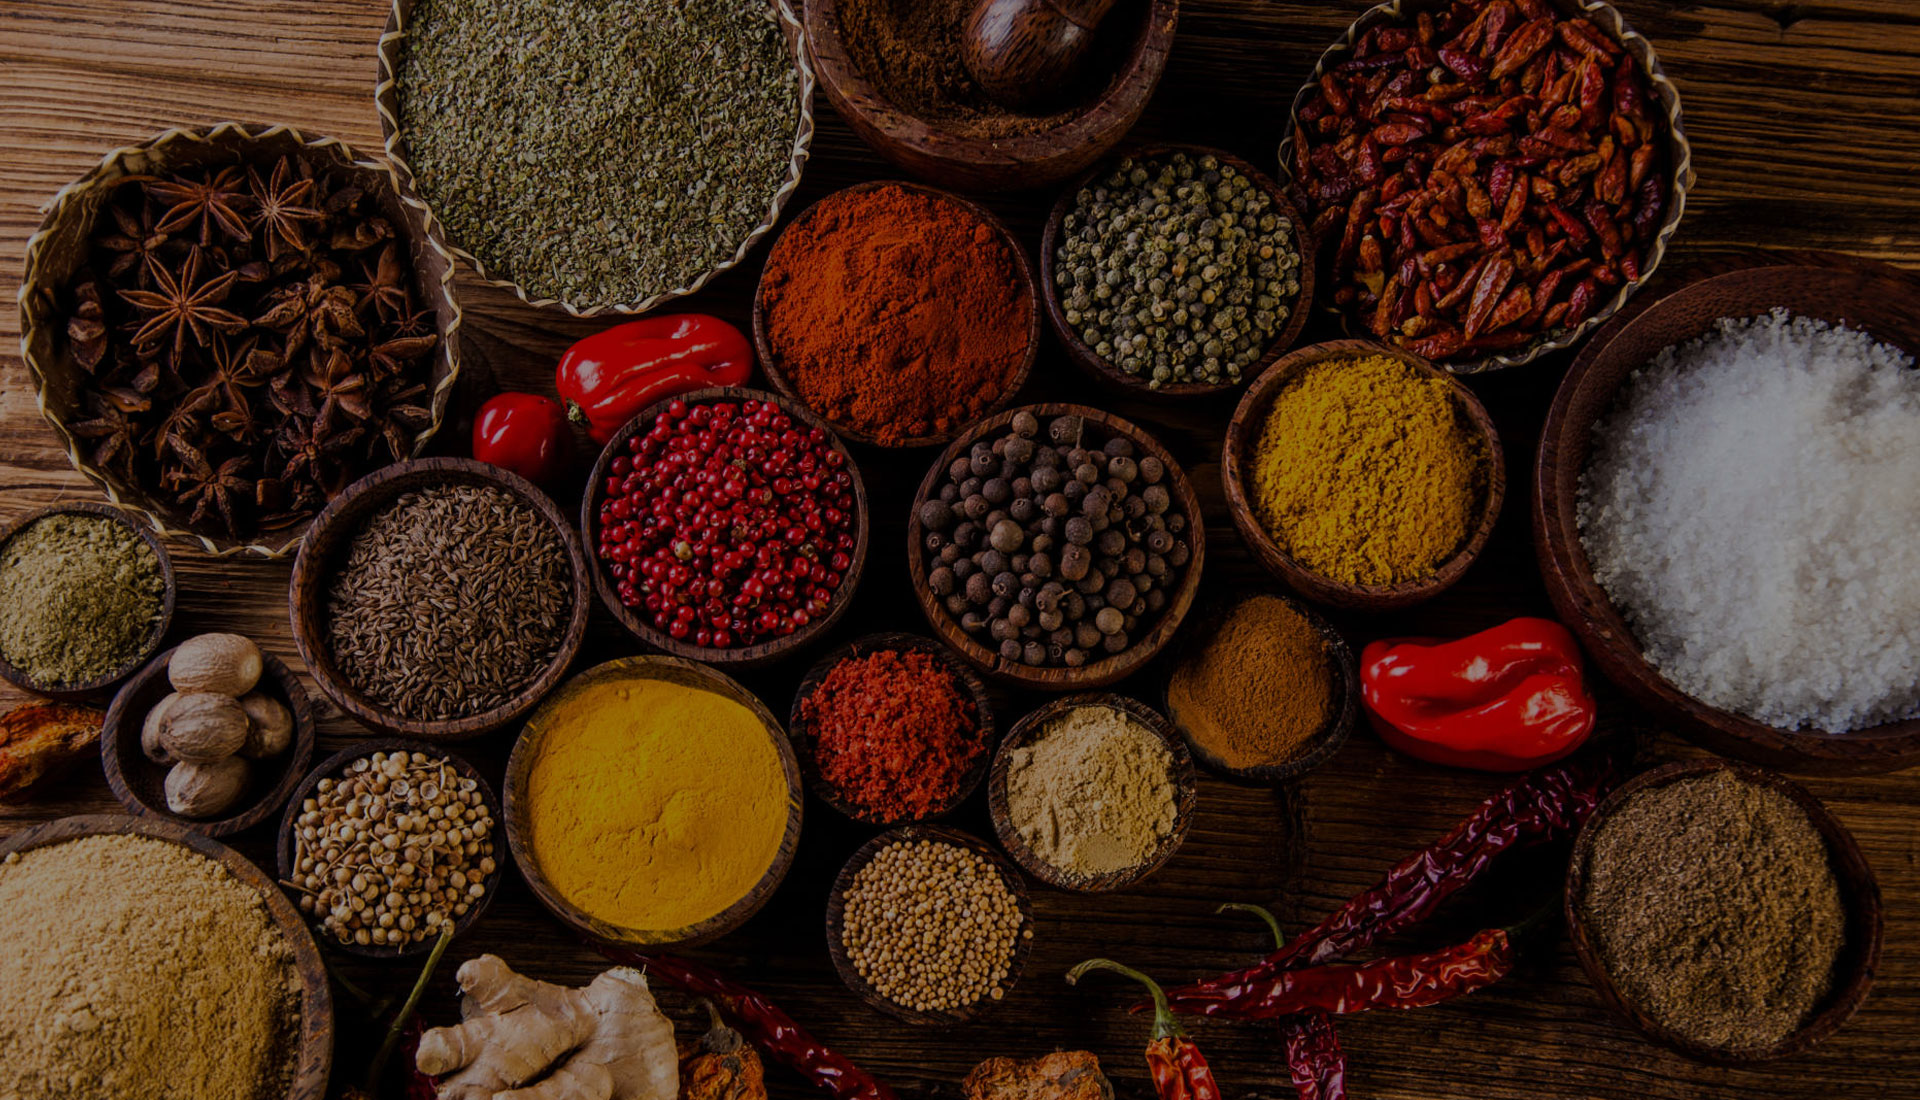 Royal Golden trading - Food and Spice trading